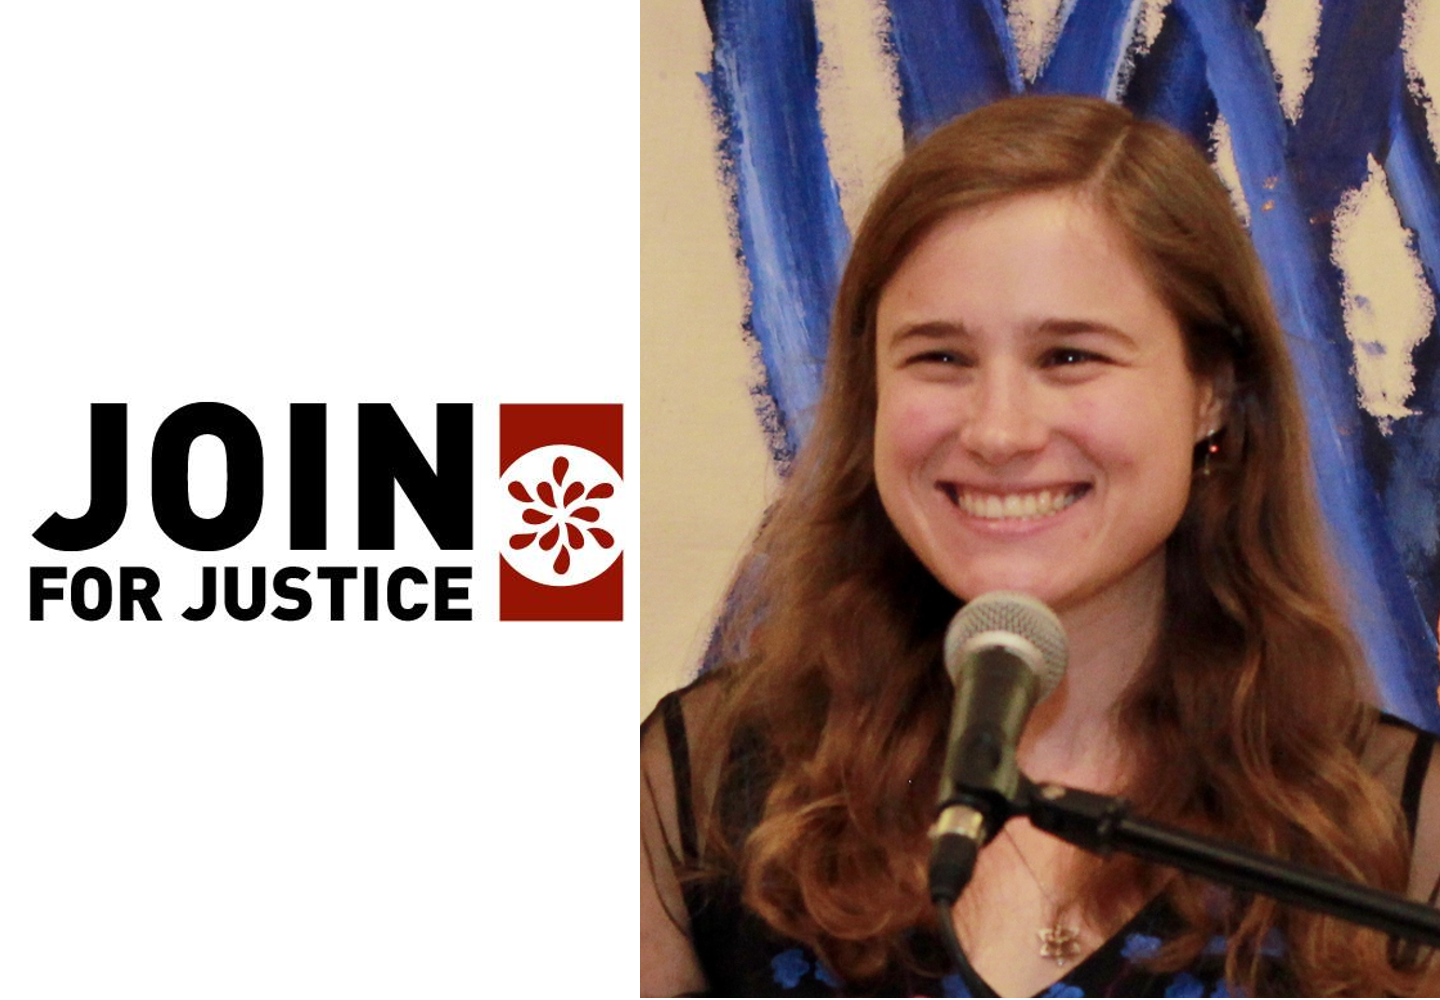 The words 'JOIN for Justice' next to Allegra, a white woman with should-length brown hair, smiling for a picture